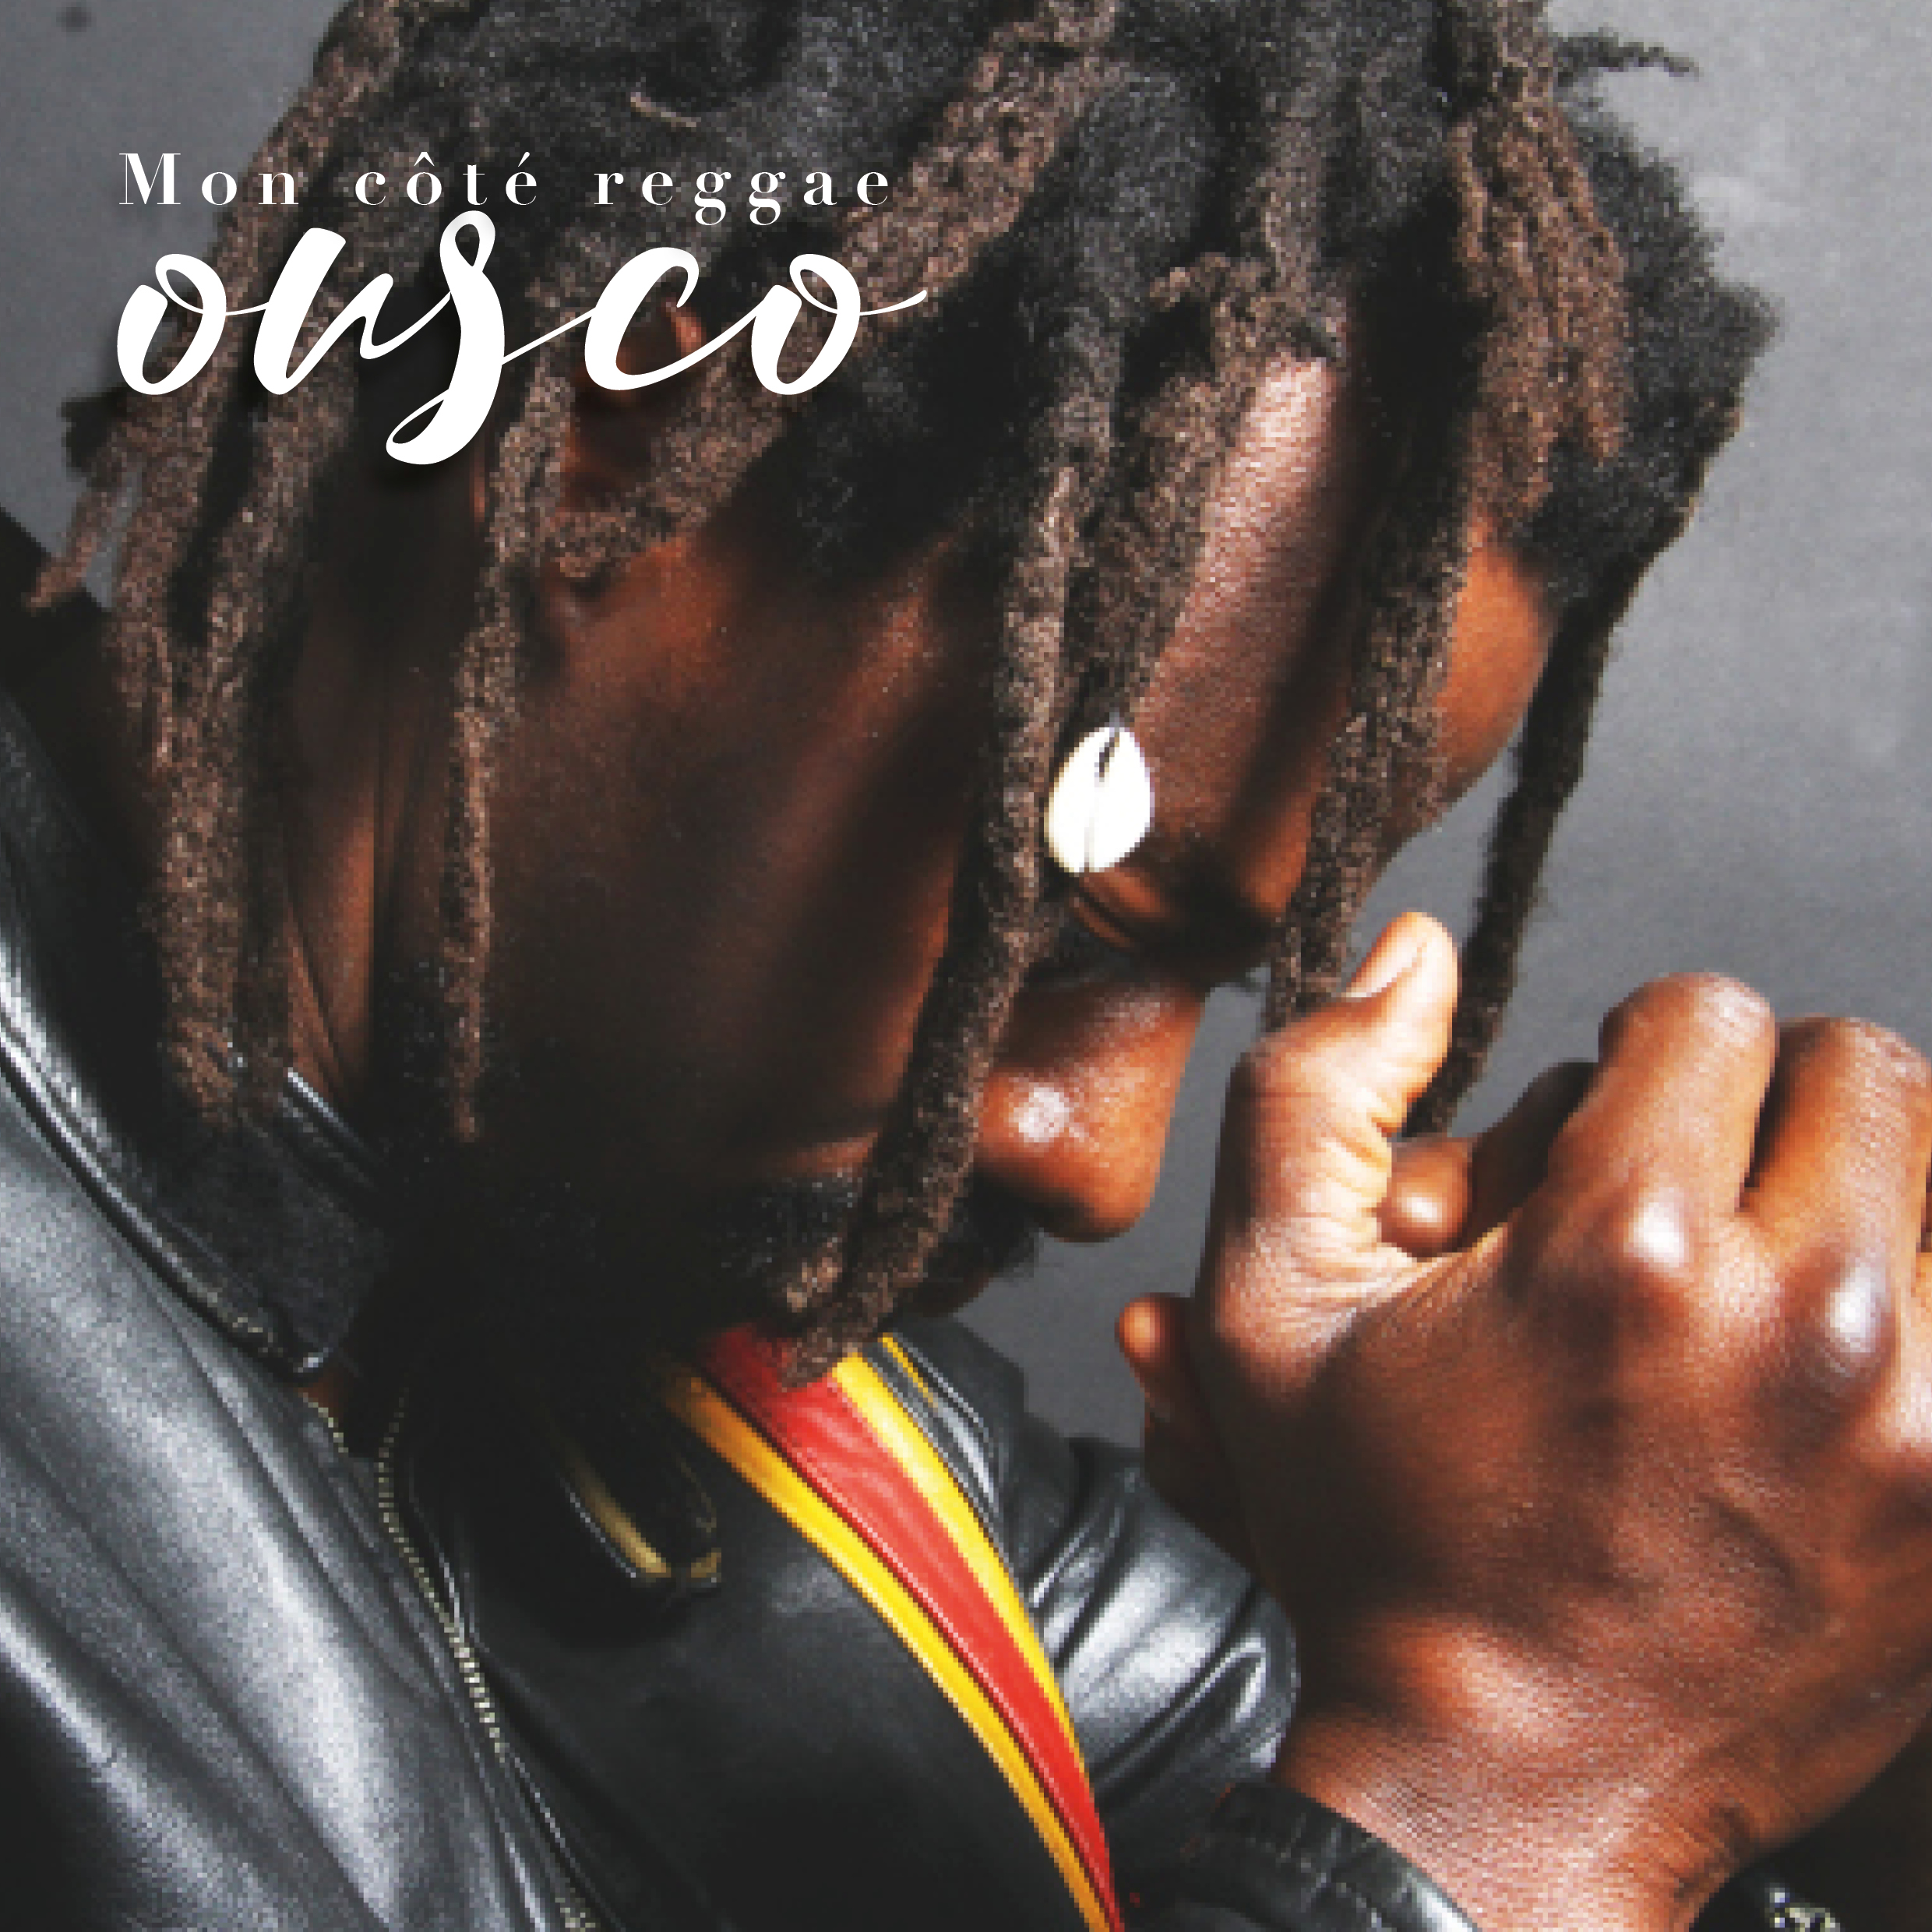 OUSCO : L'HÉRITAGE DE LA WORLD MUSIC DANS SON PREMIER ALBUM SOLO